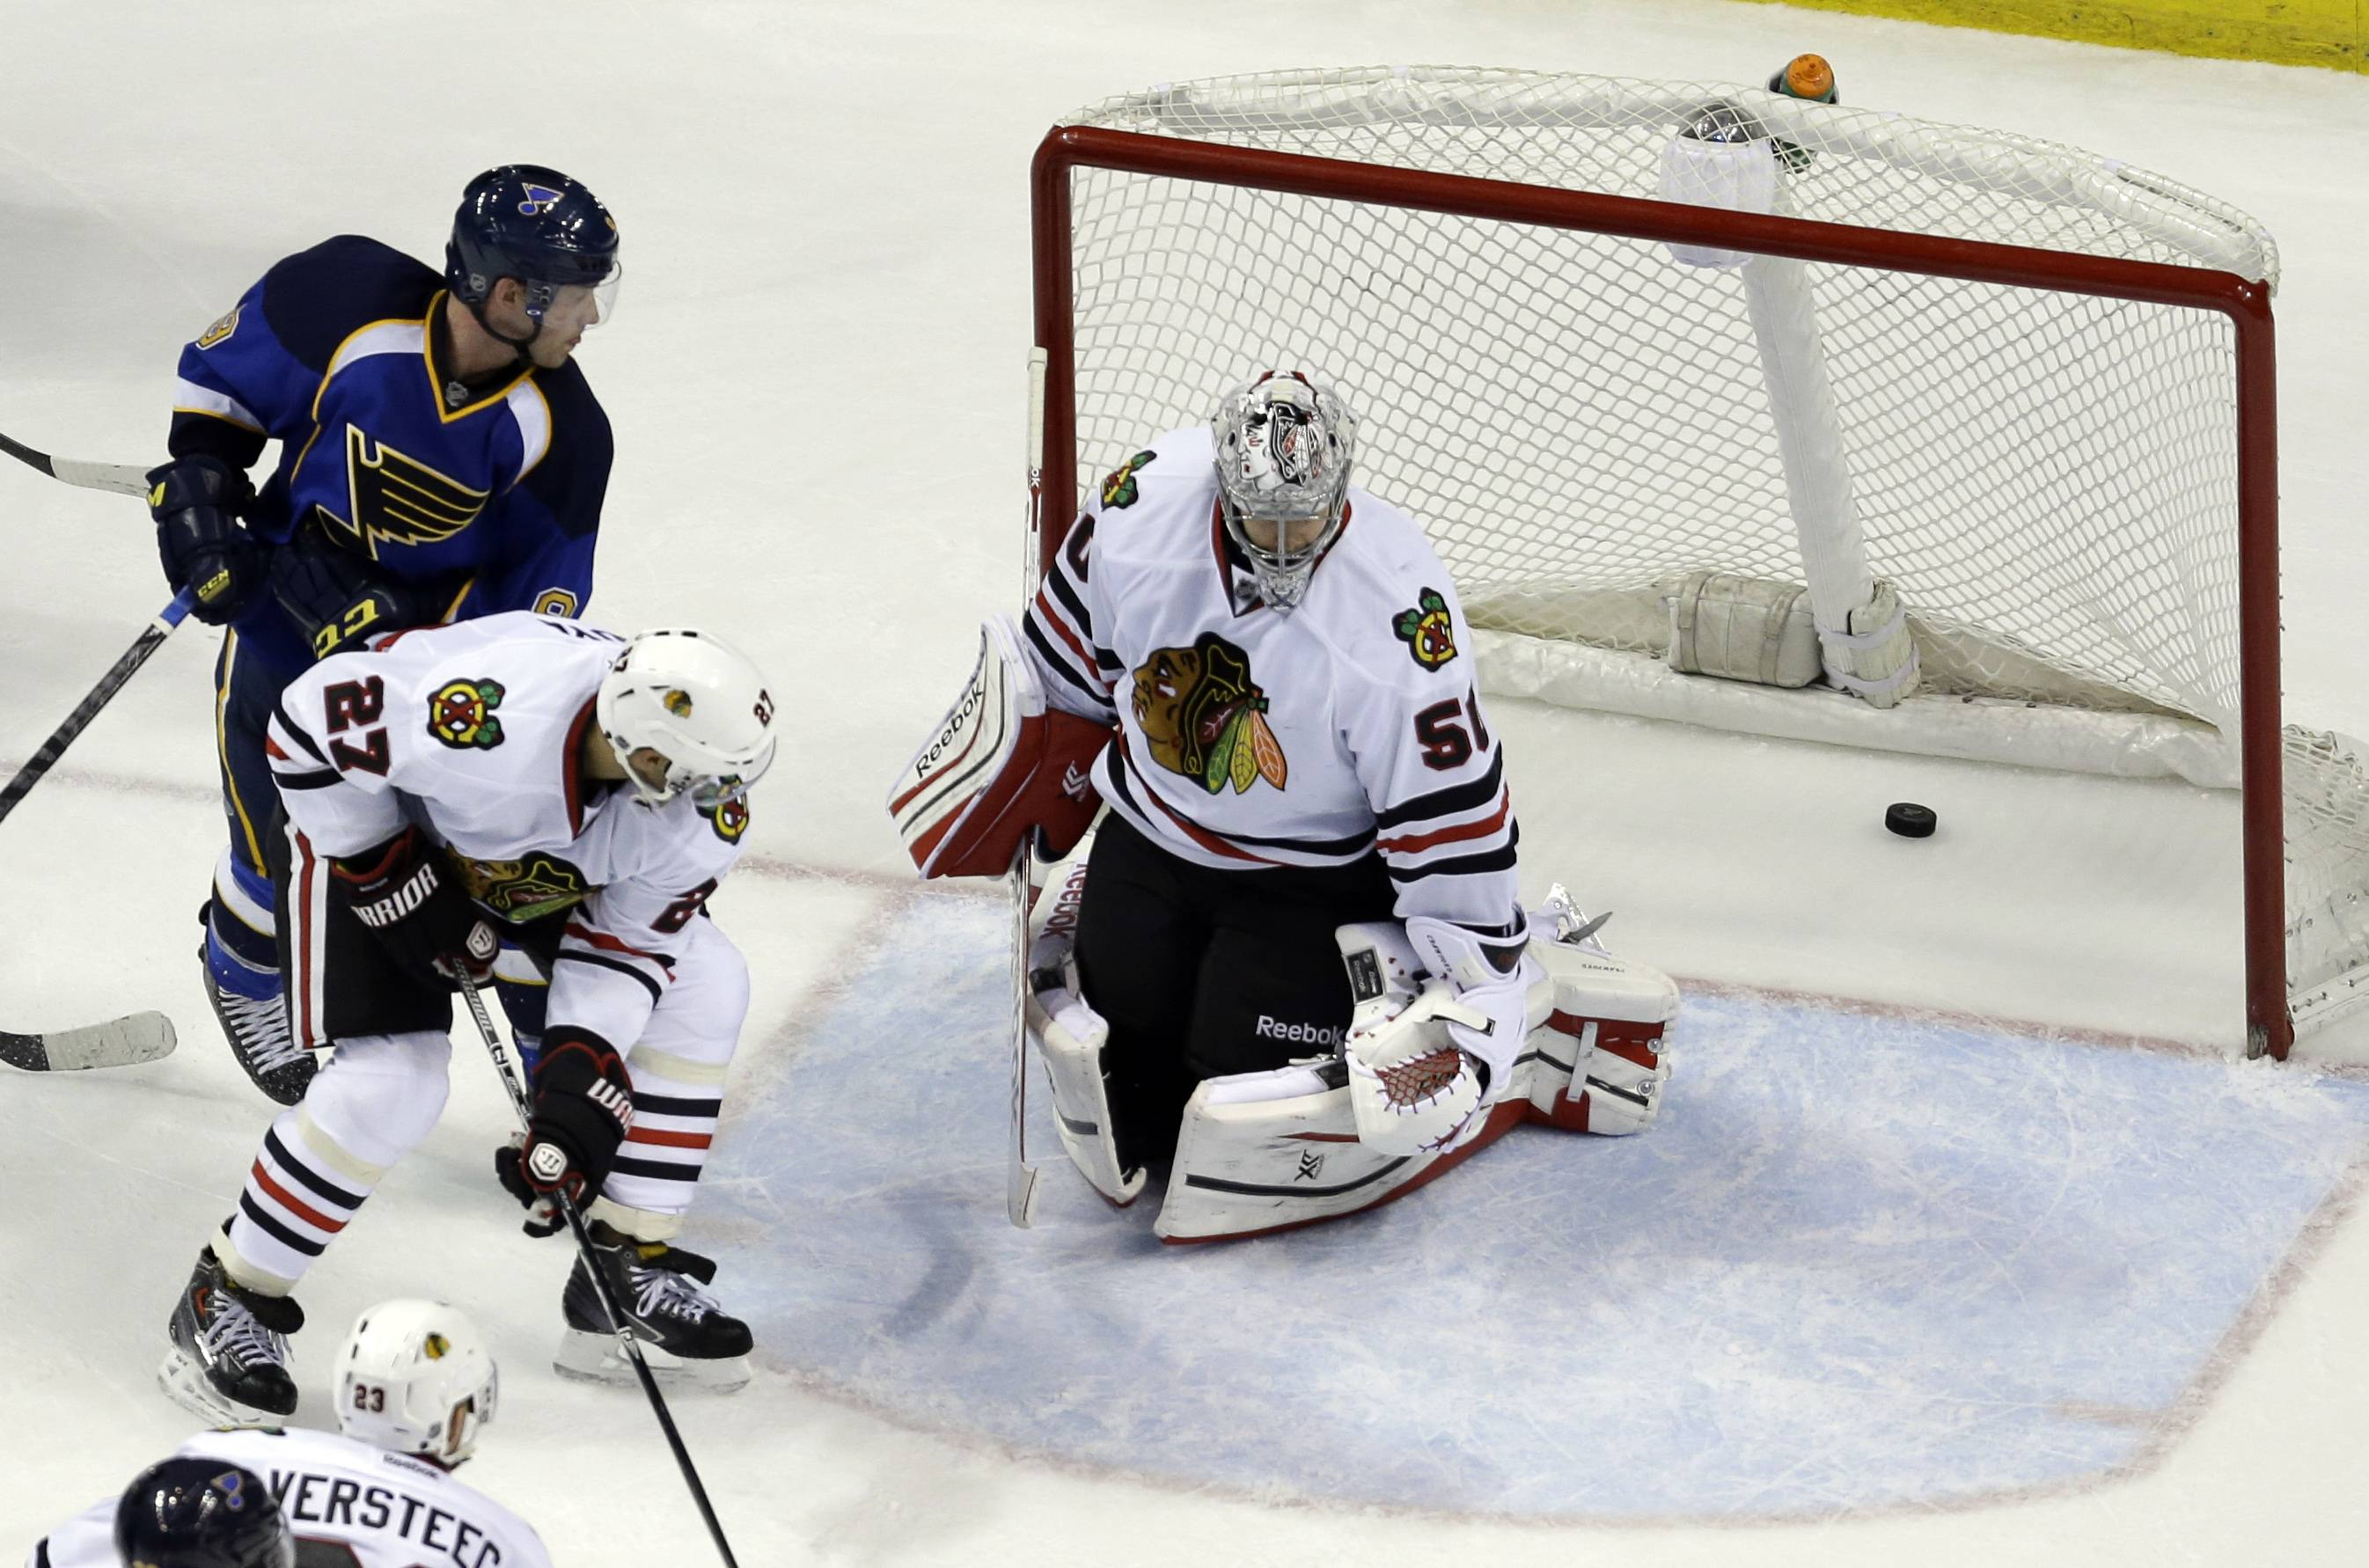 St. Louis Blues' Jaden Schwartz, top left, watches as his shot slips past Chicago Blackhawks goalie Corey Crawford and Johnny Oduya (27) for a goal during the third period.